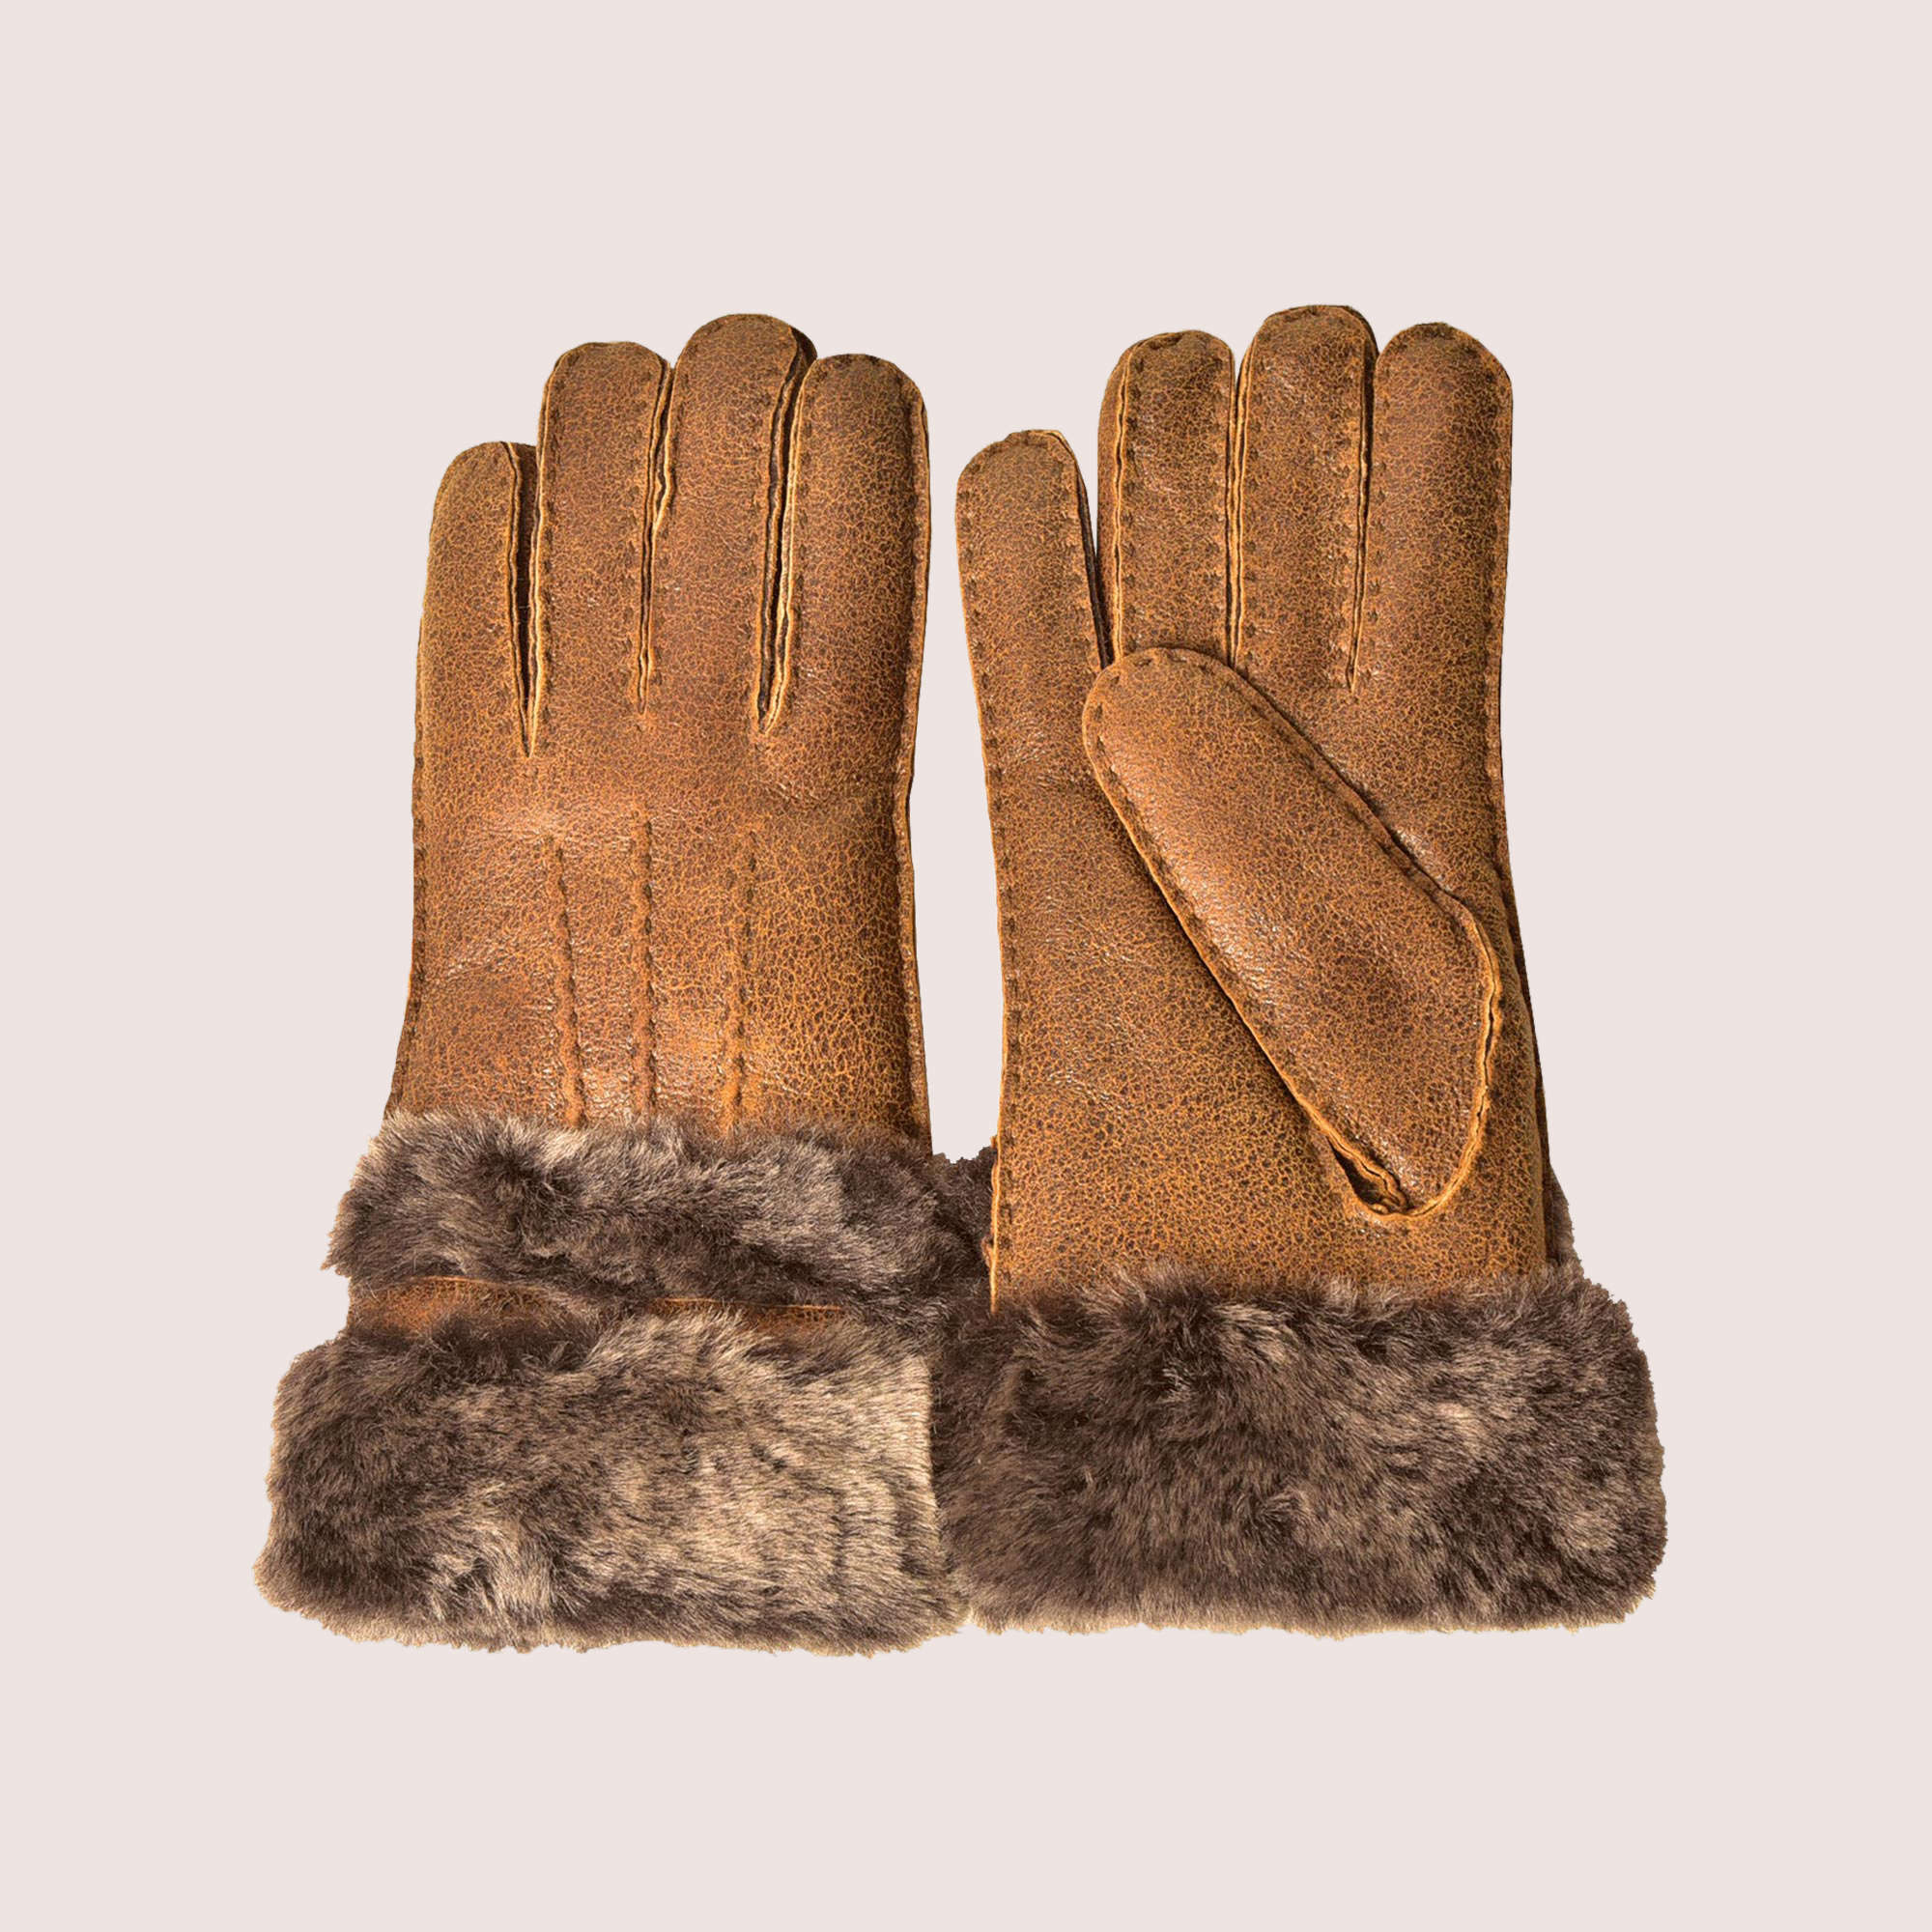 Lizzy Hand-Stitched Shearing Gloves